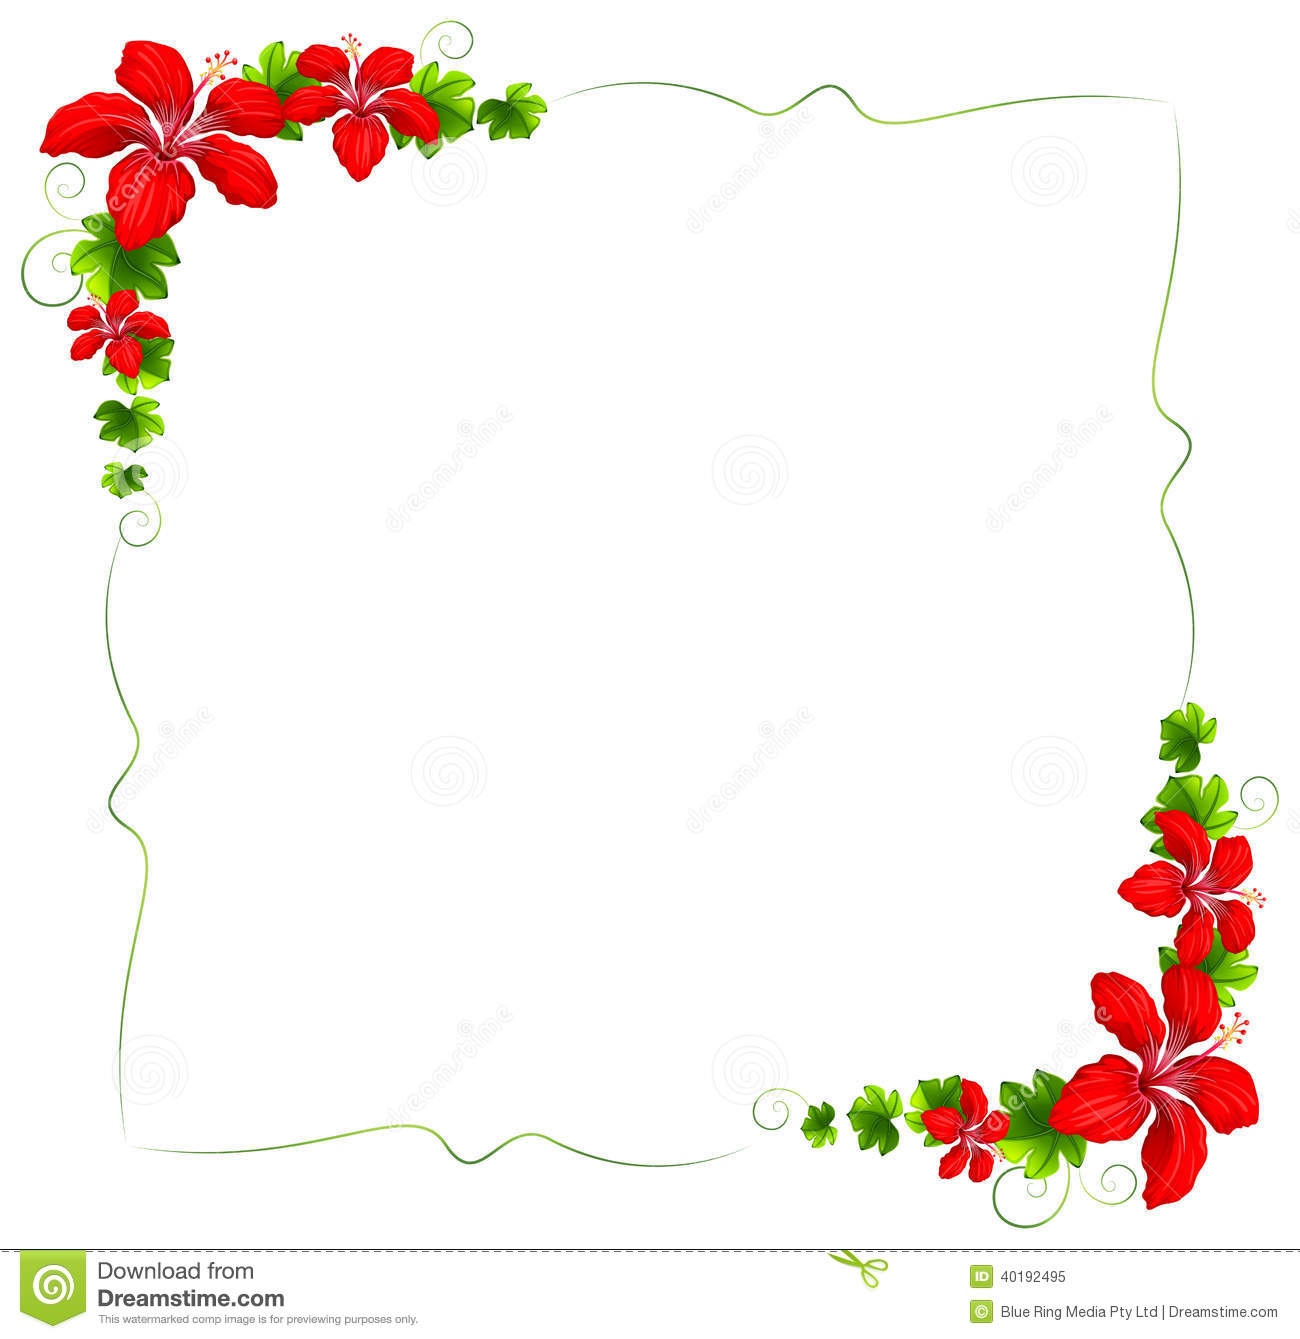 Hacer Plano Online A Floral Border With Red Flowers Stock Vector Image